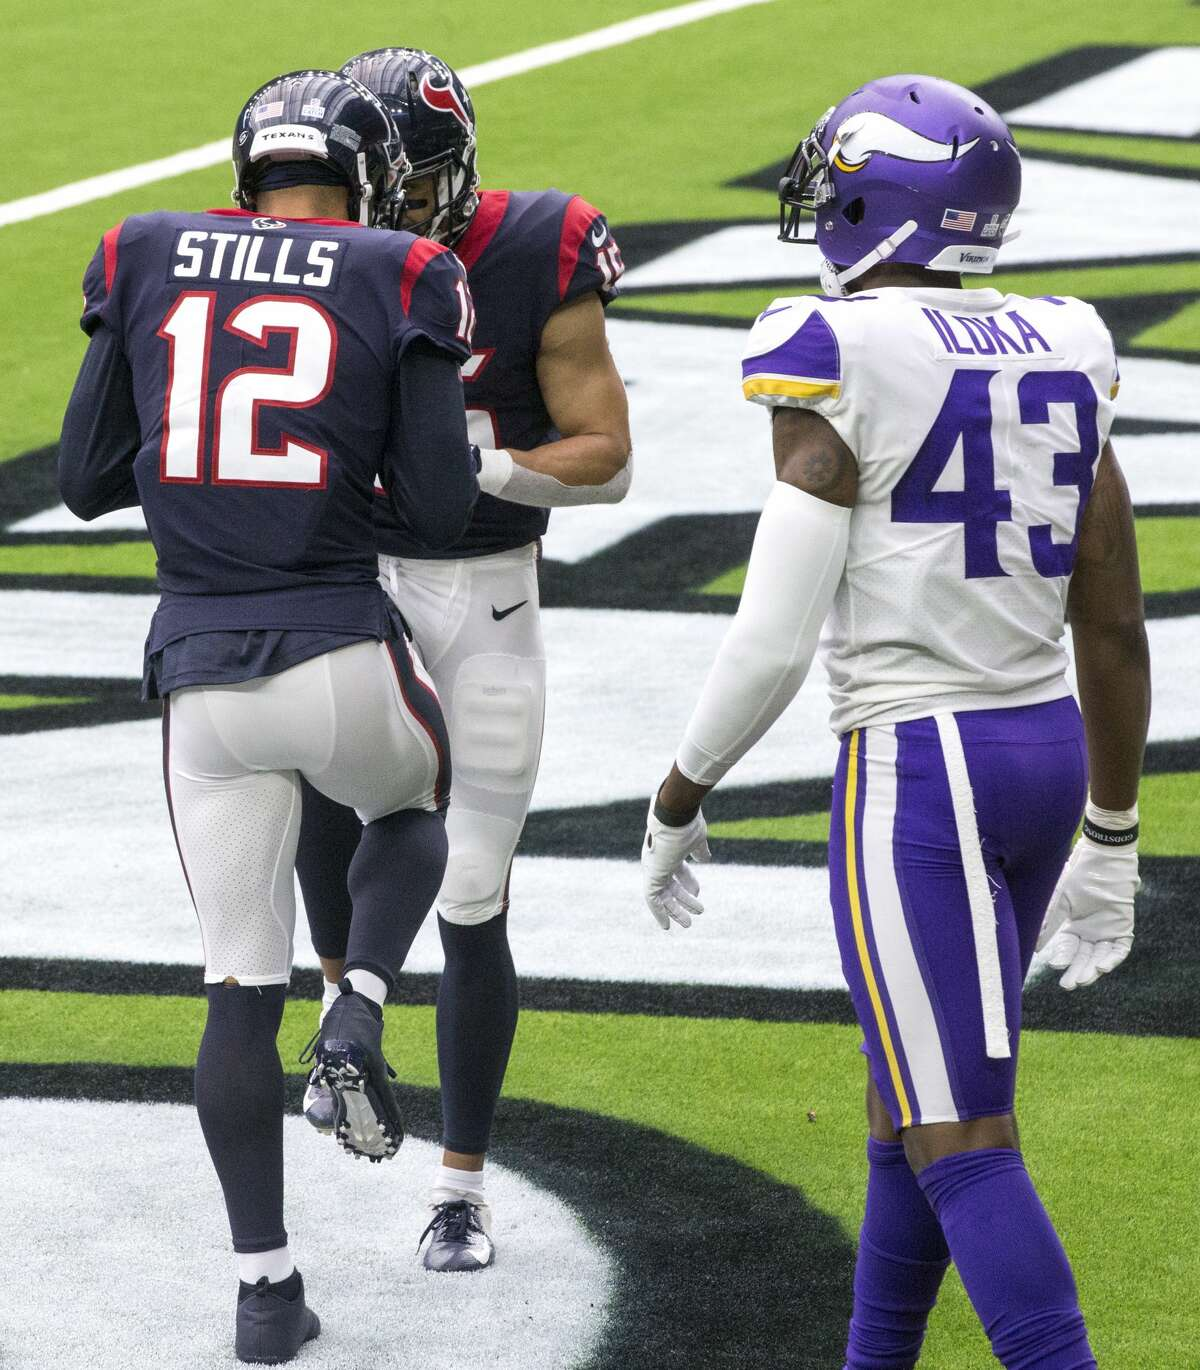 Houston Texans wide receivers Kenny Stills (12) and Will Fuller (15) celebrate Stills' 24-yard touchdown reception during the fourth quarter of an NFL football game at NRG Stadium on Sunday, Oct. 4, 2020, in Houston.